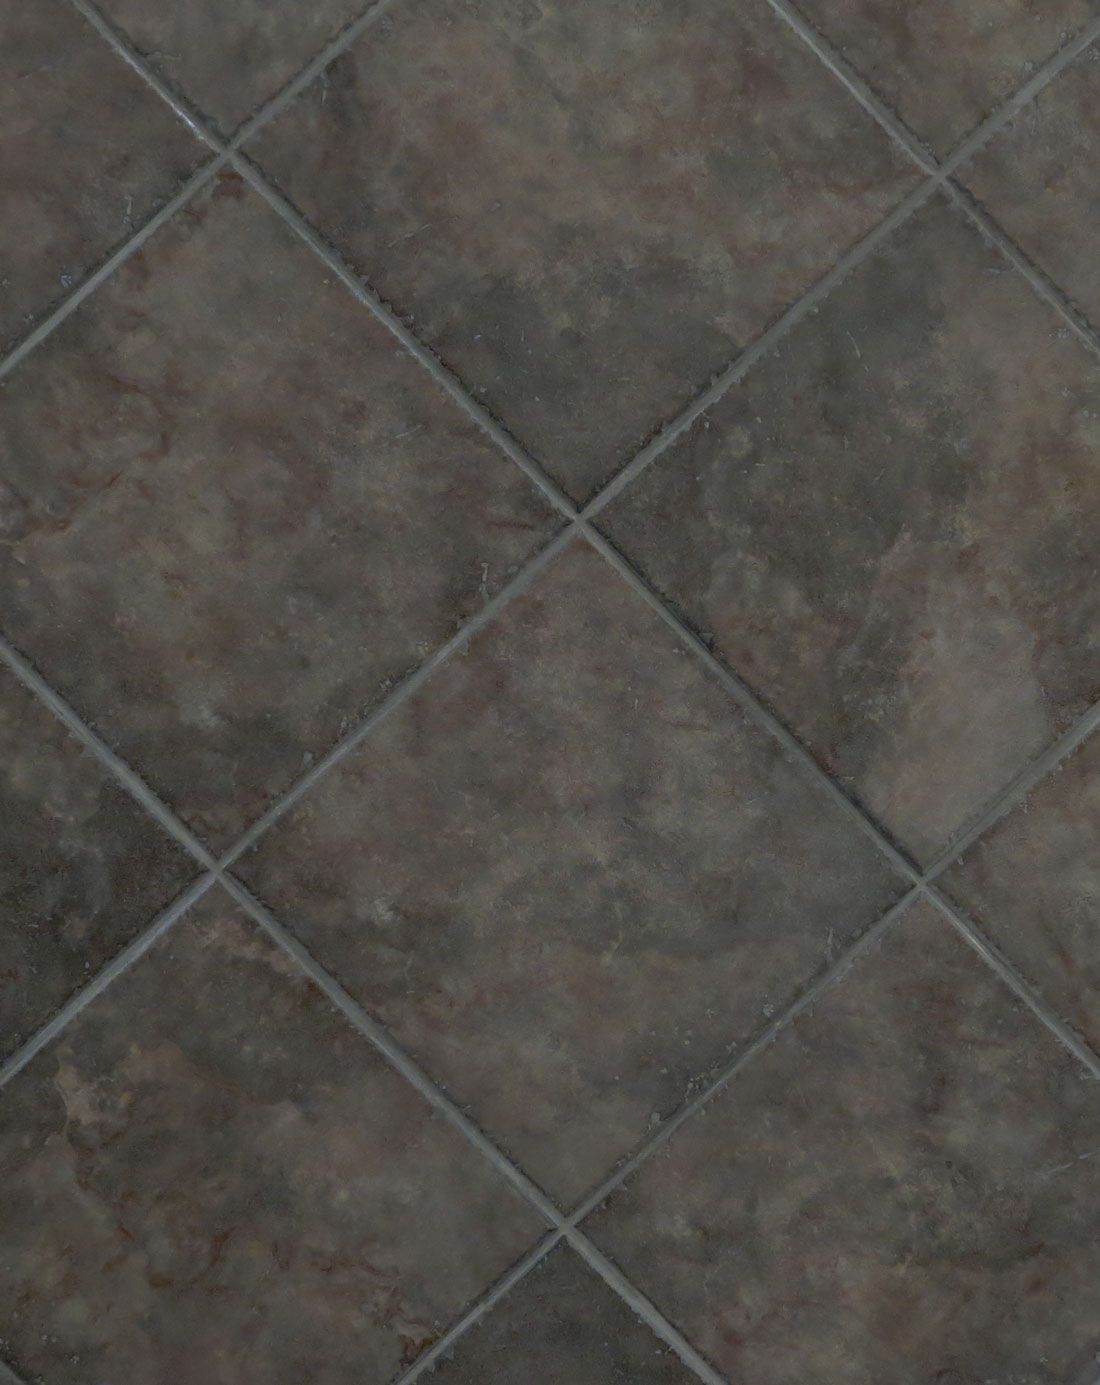 Palace Blue Kitchen Floor Tiles 6 95m2 Free Tile Samples